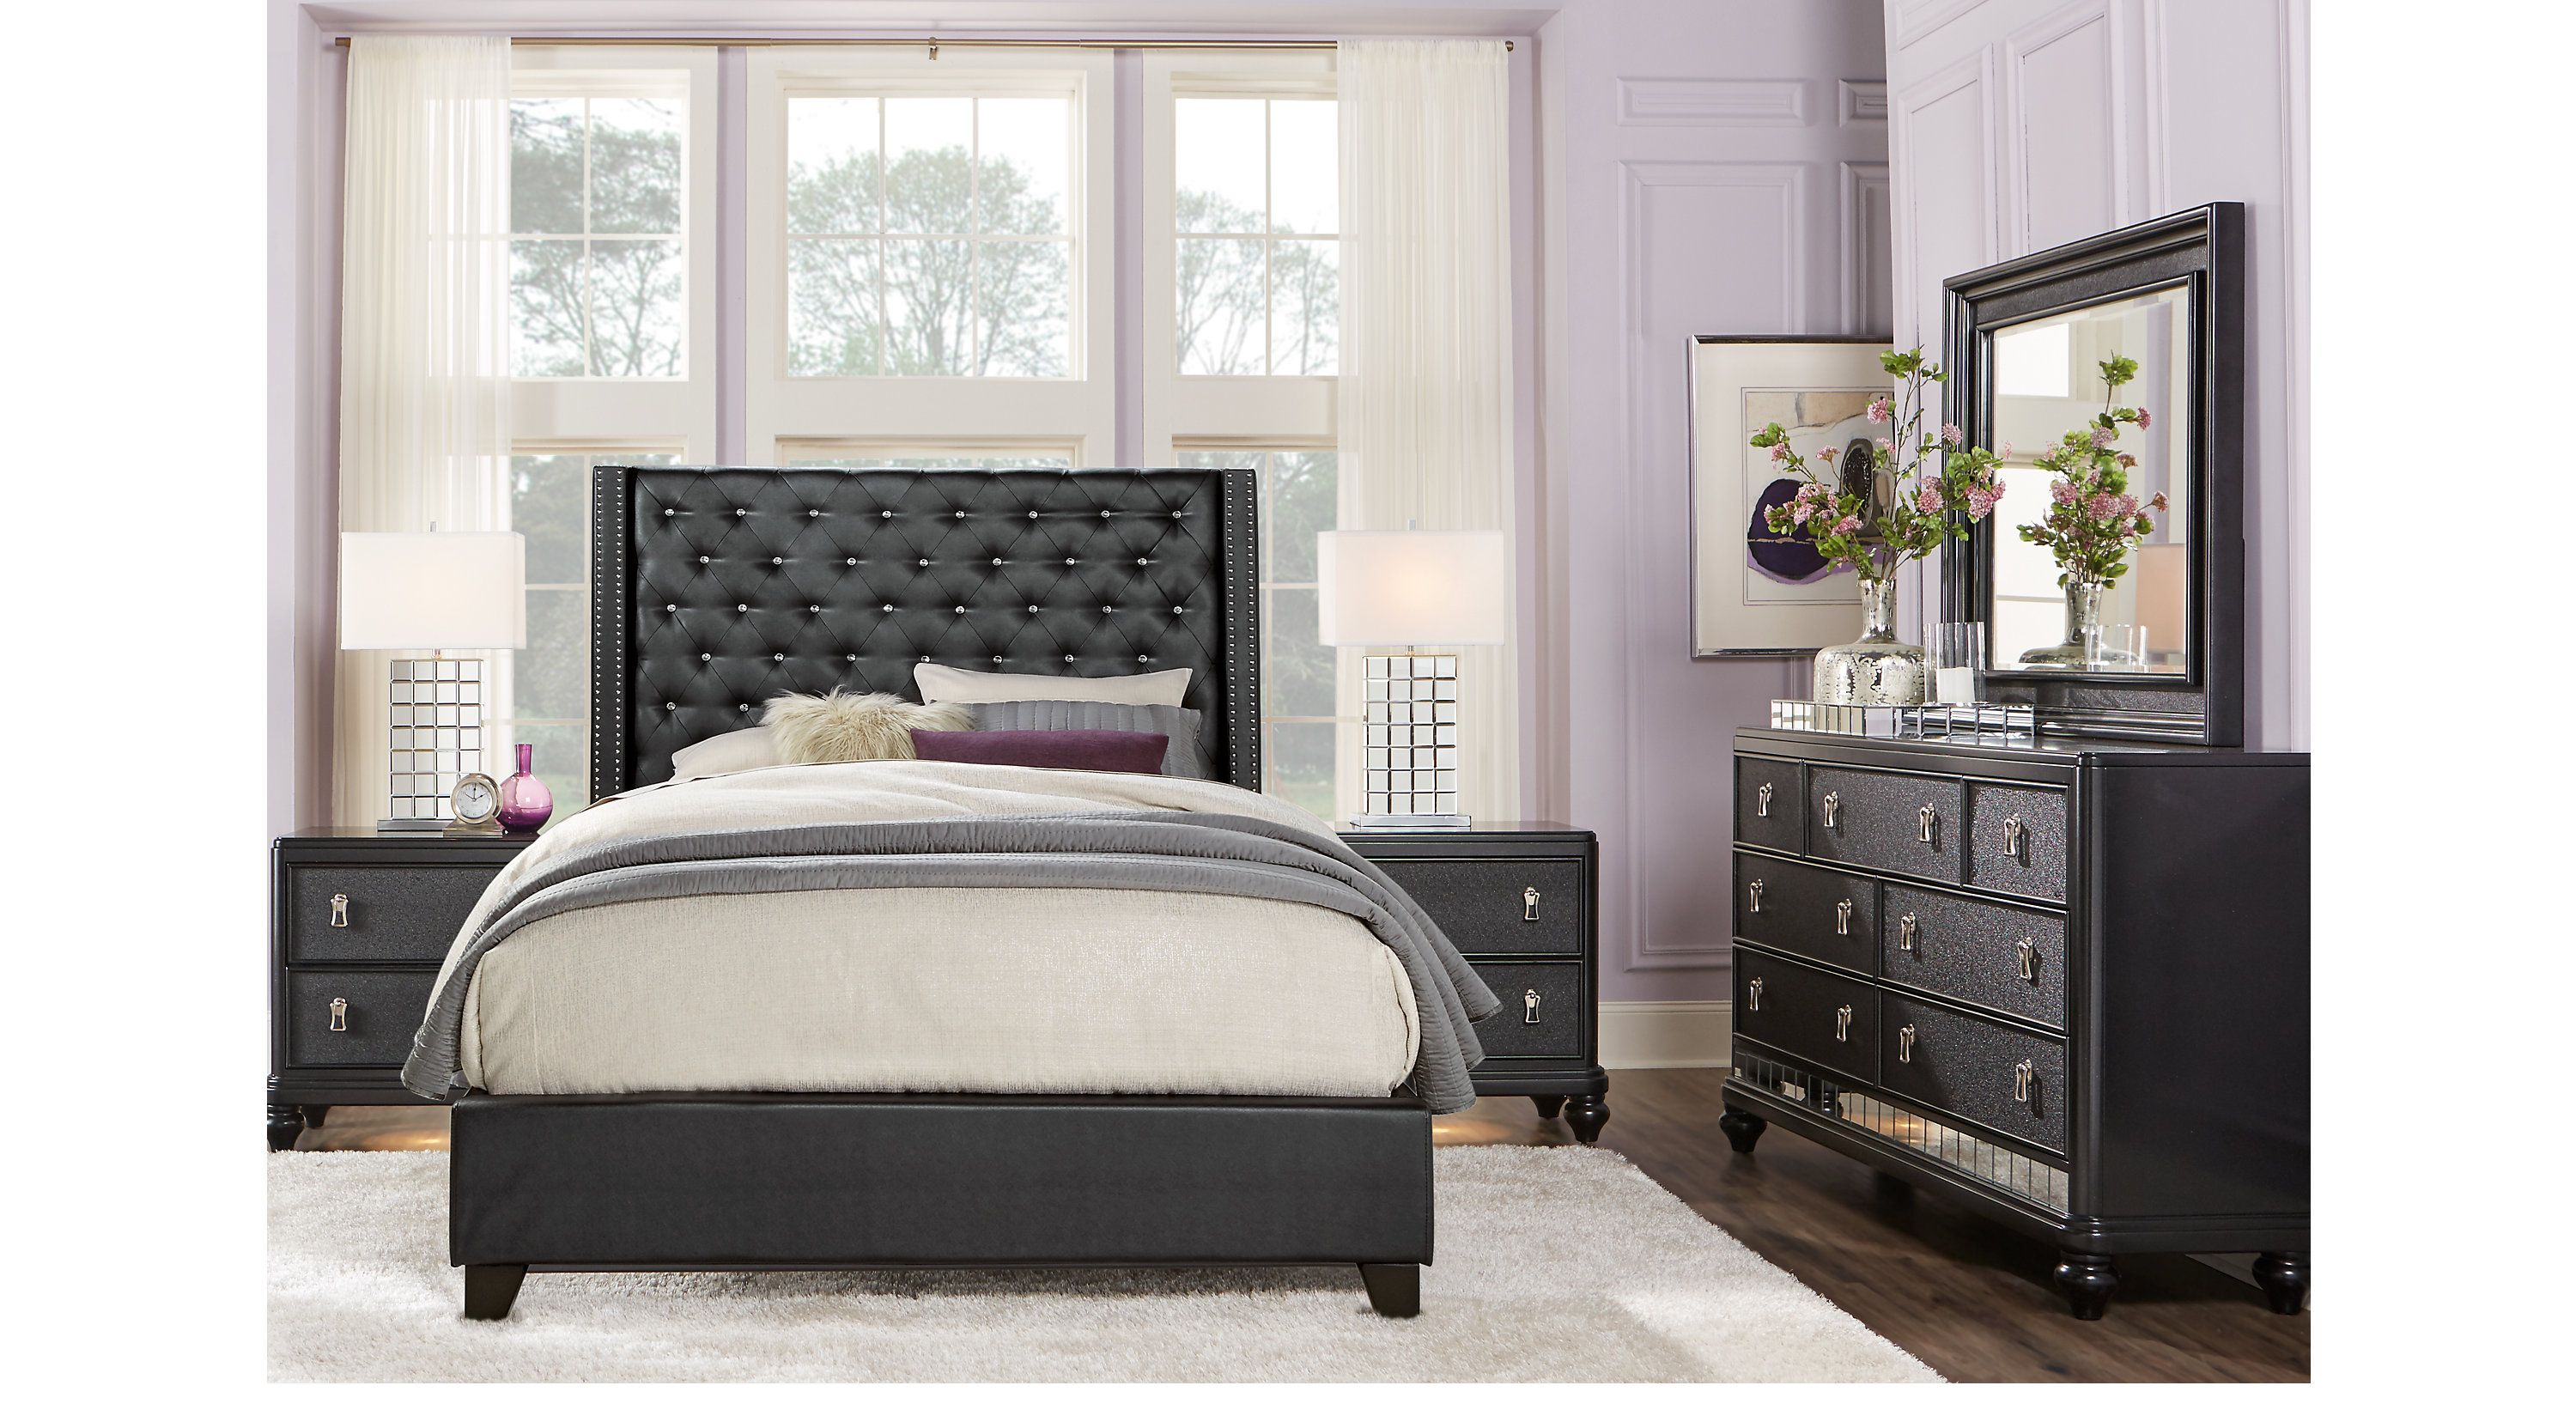 Sofia Vergara Paris Black 5 Pc King Upholstered Bedroom King